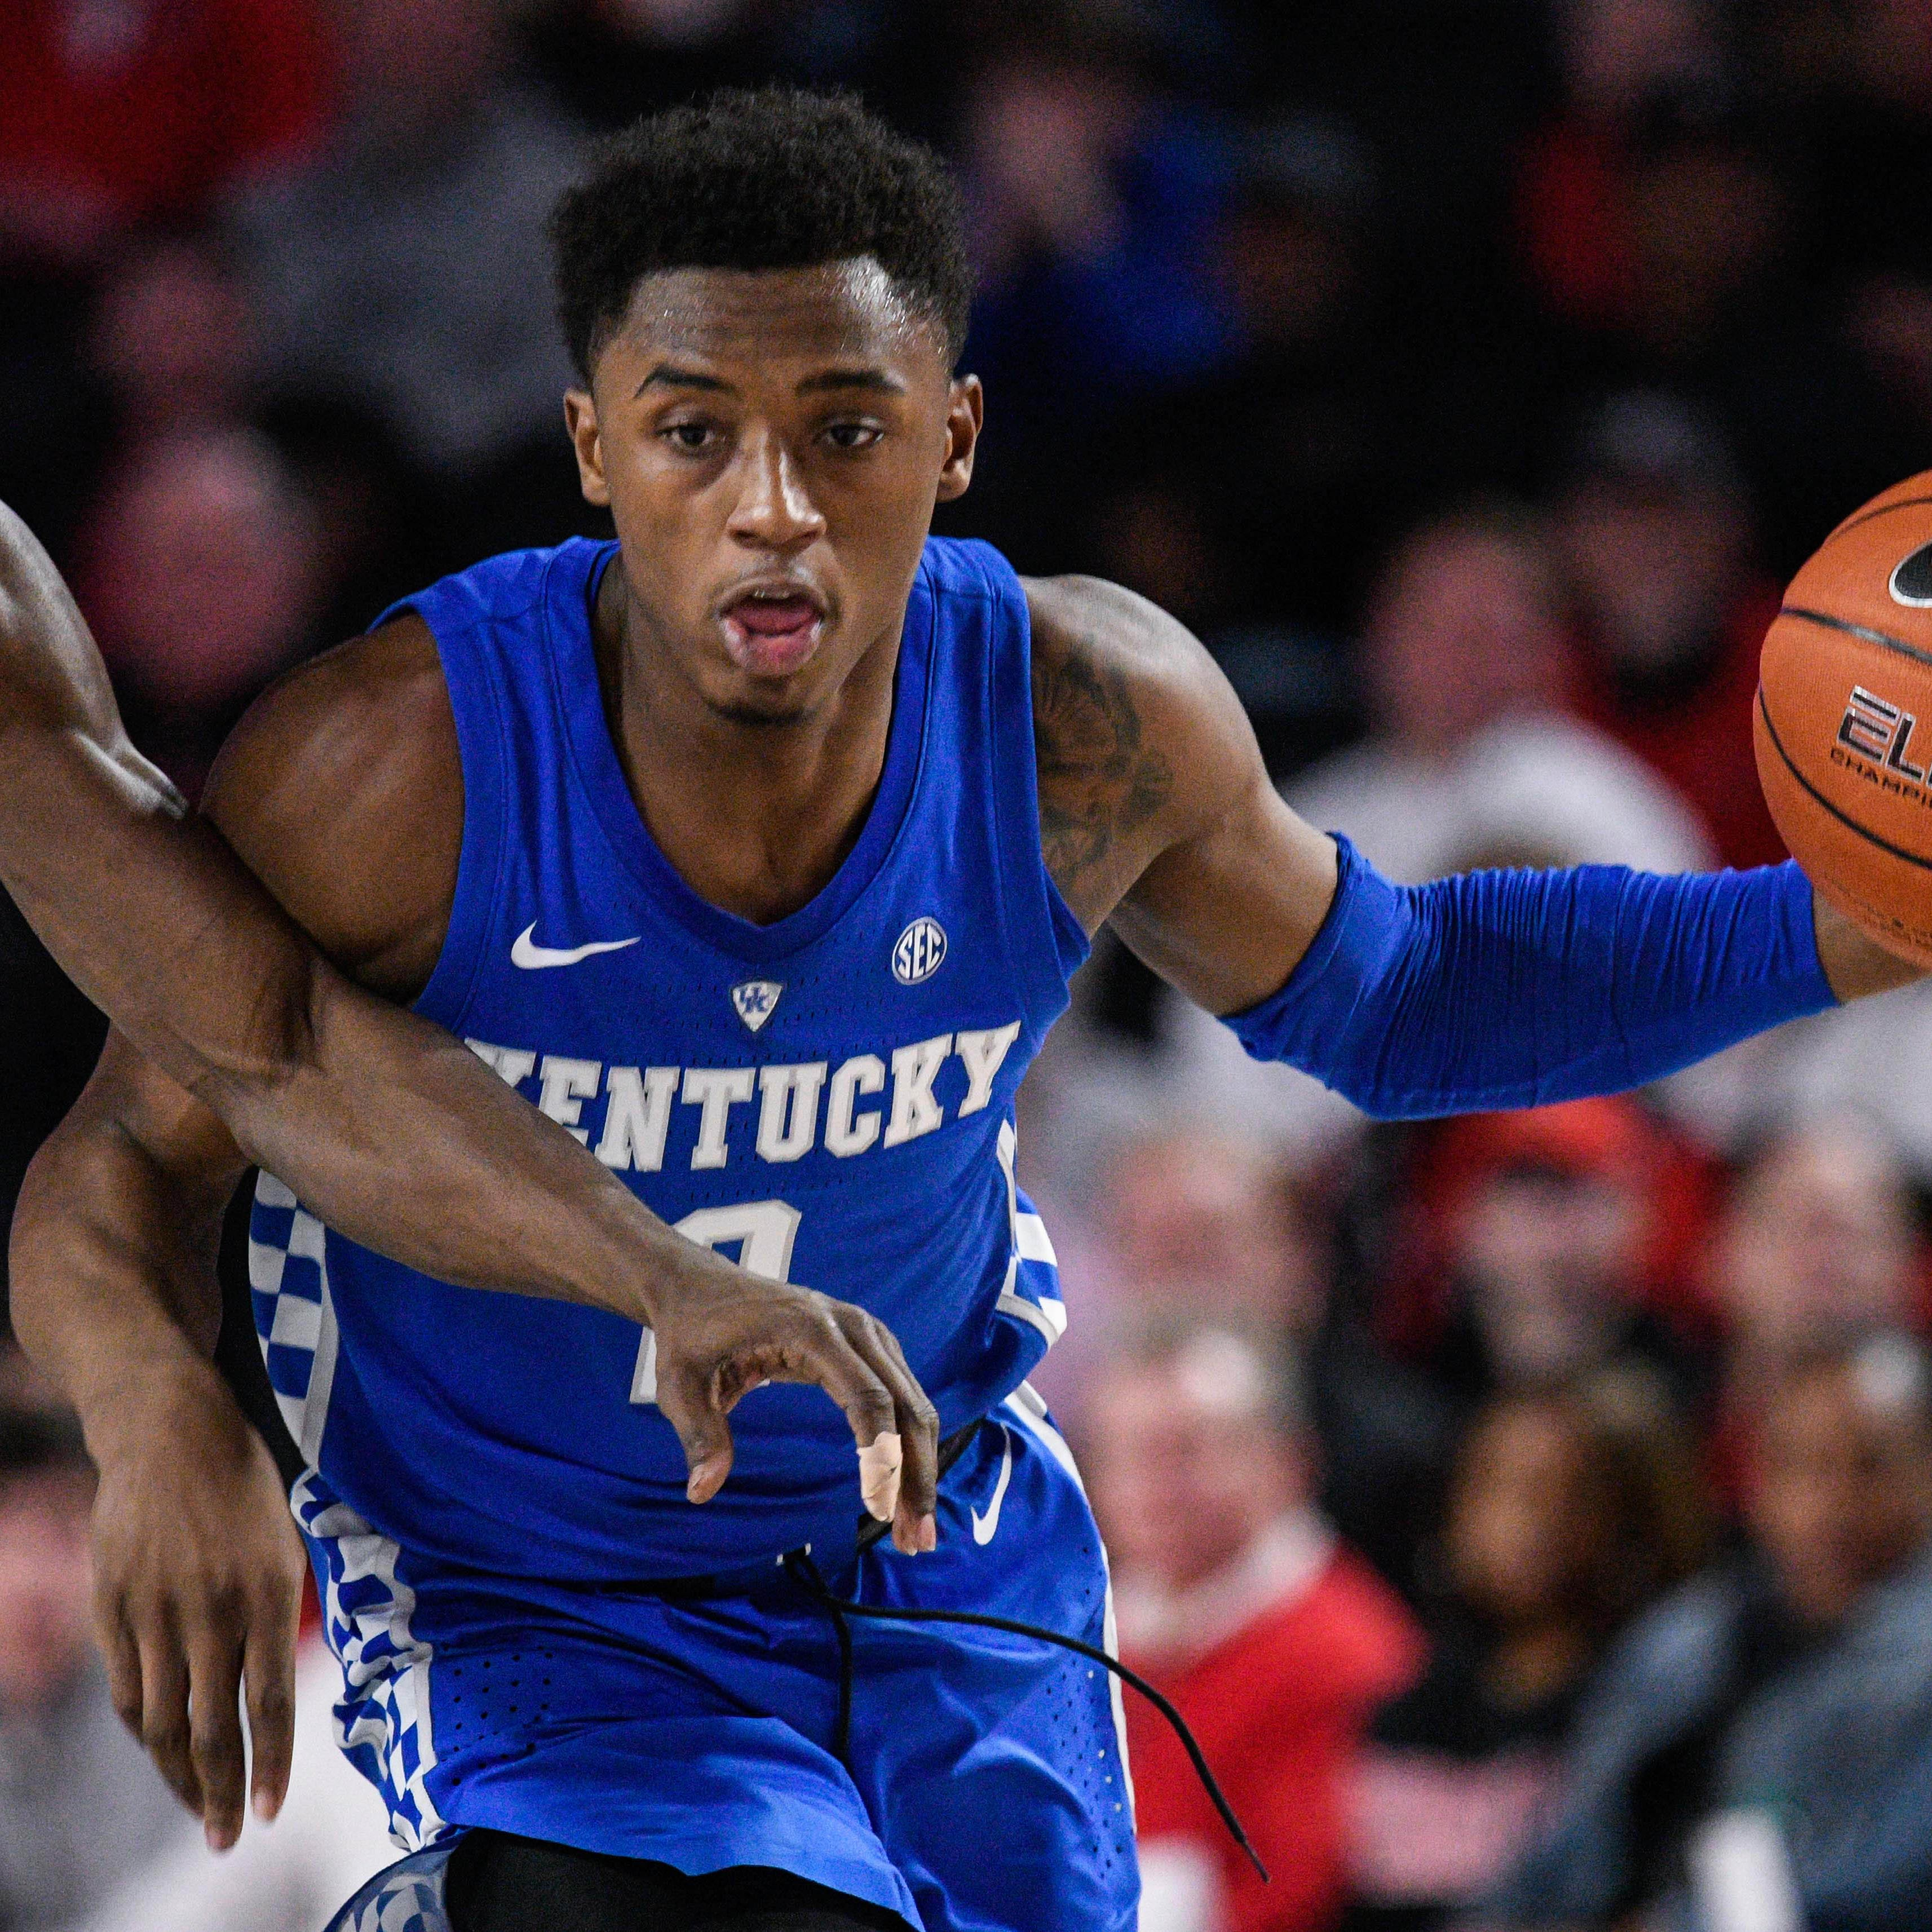 Three takeaways from Kentucky basketball's win over Georgia